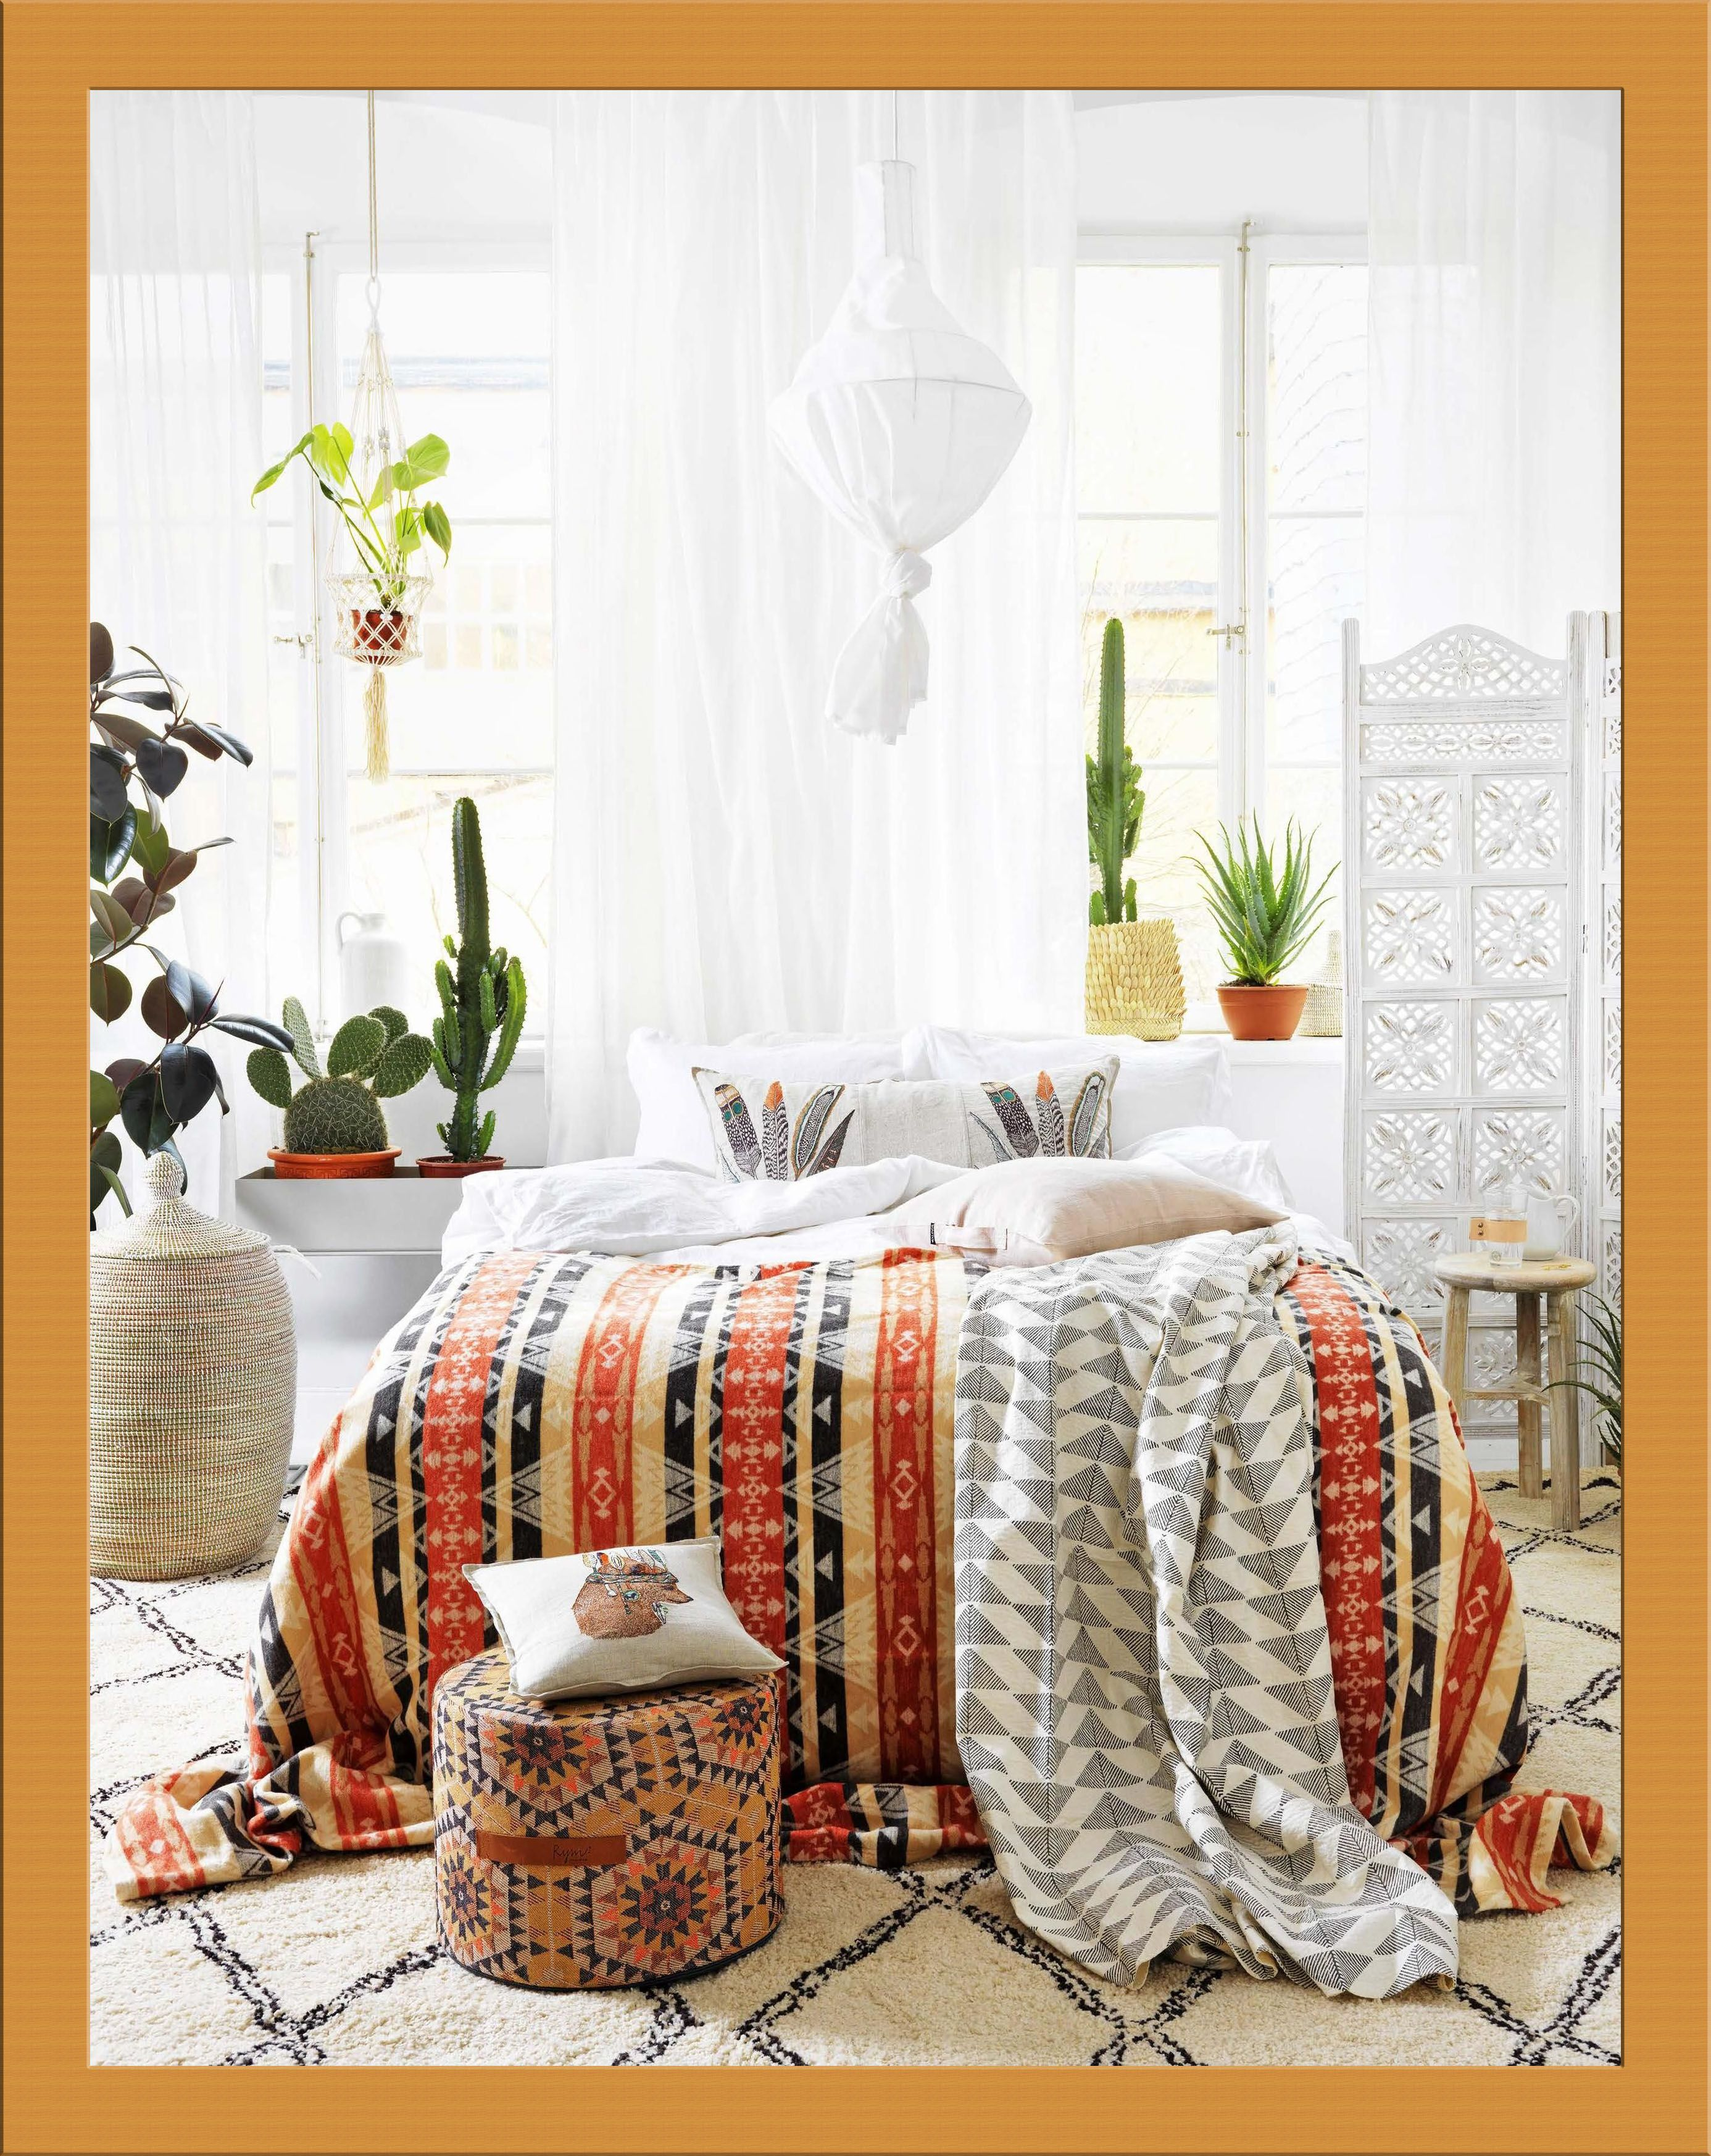 Why Some People Almost Always Make/Save Money With Bohemian Homedecor